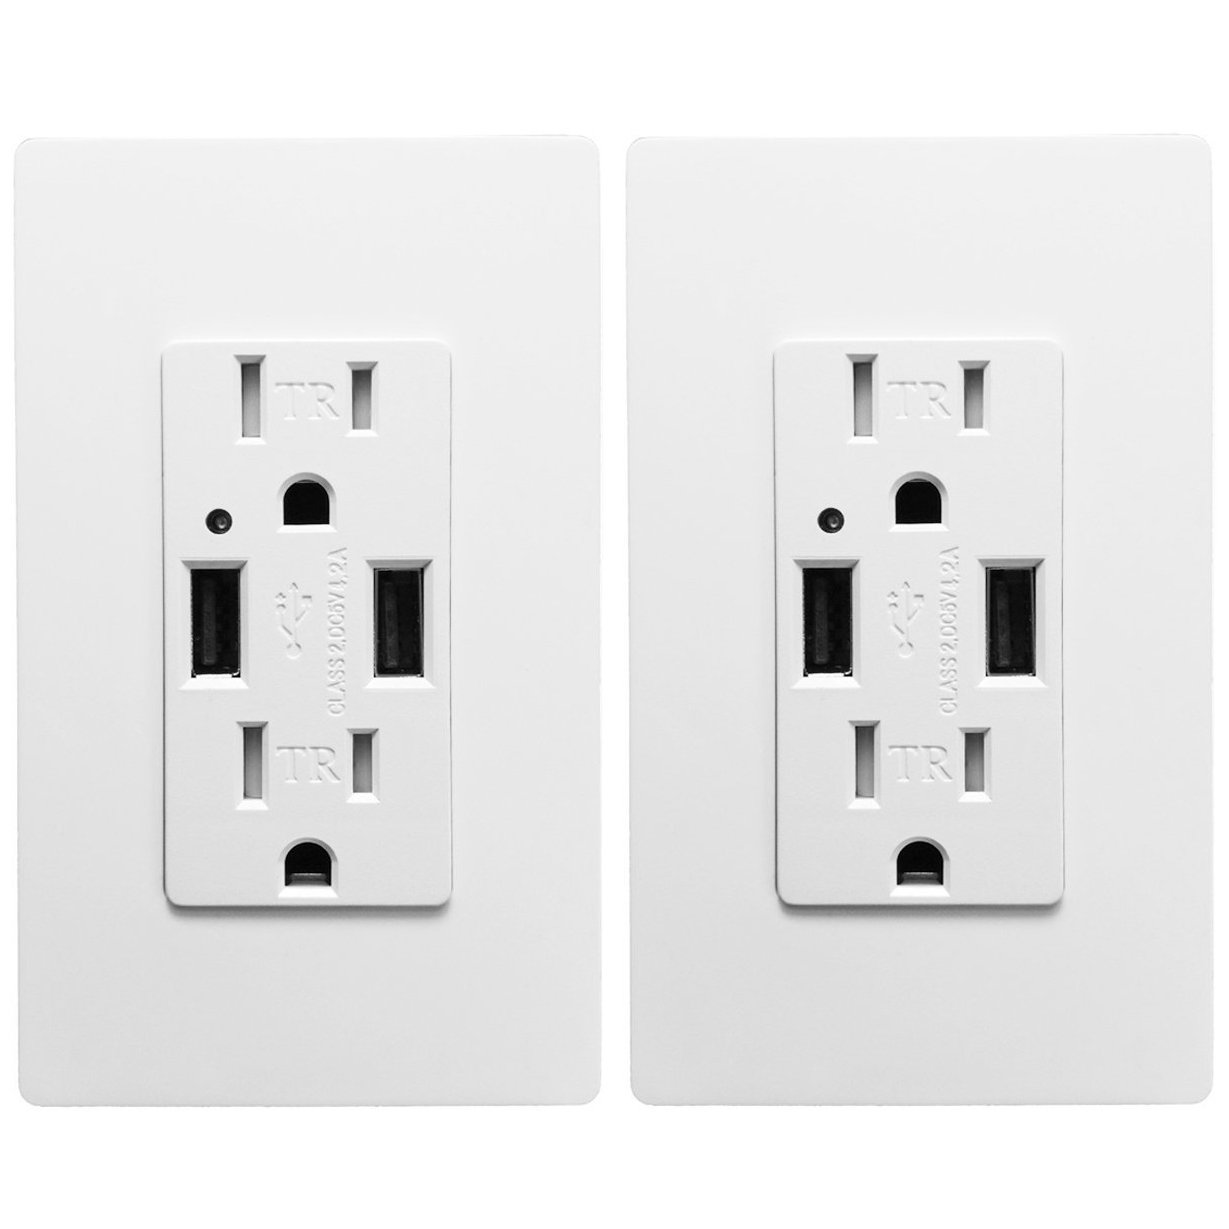 Outlet with USB High Speed Charger 4.2A Charging Capability, Child Proof Safety Duplex Receptacle 15 Amp, Tamper Resistant Wall socket plate Included UL Listed MICMI U24 (4.2A 2pack)